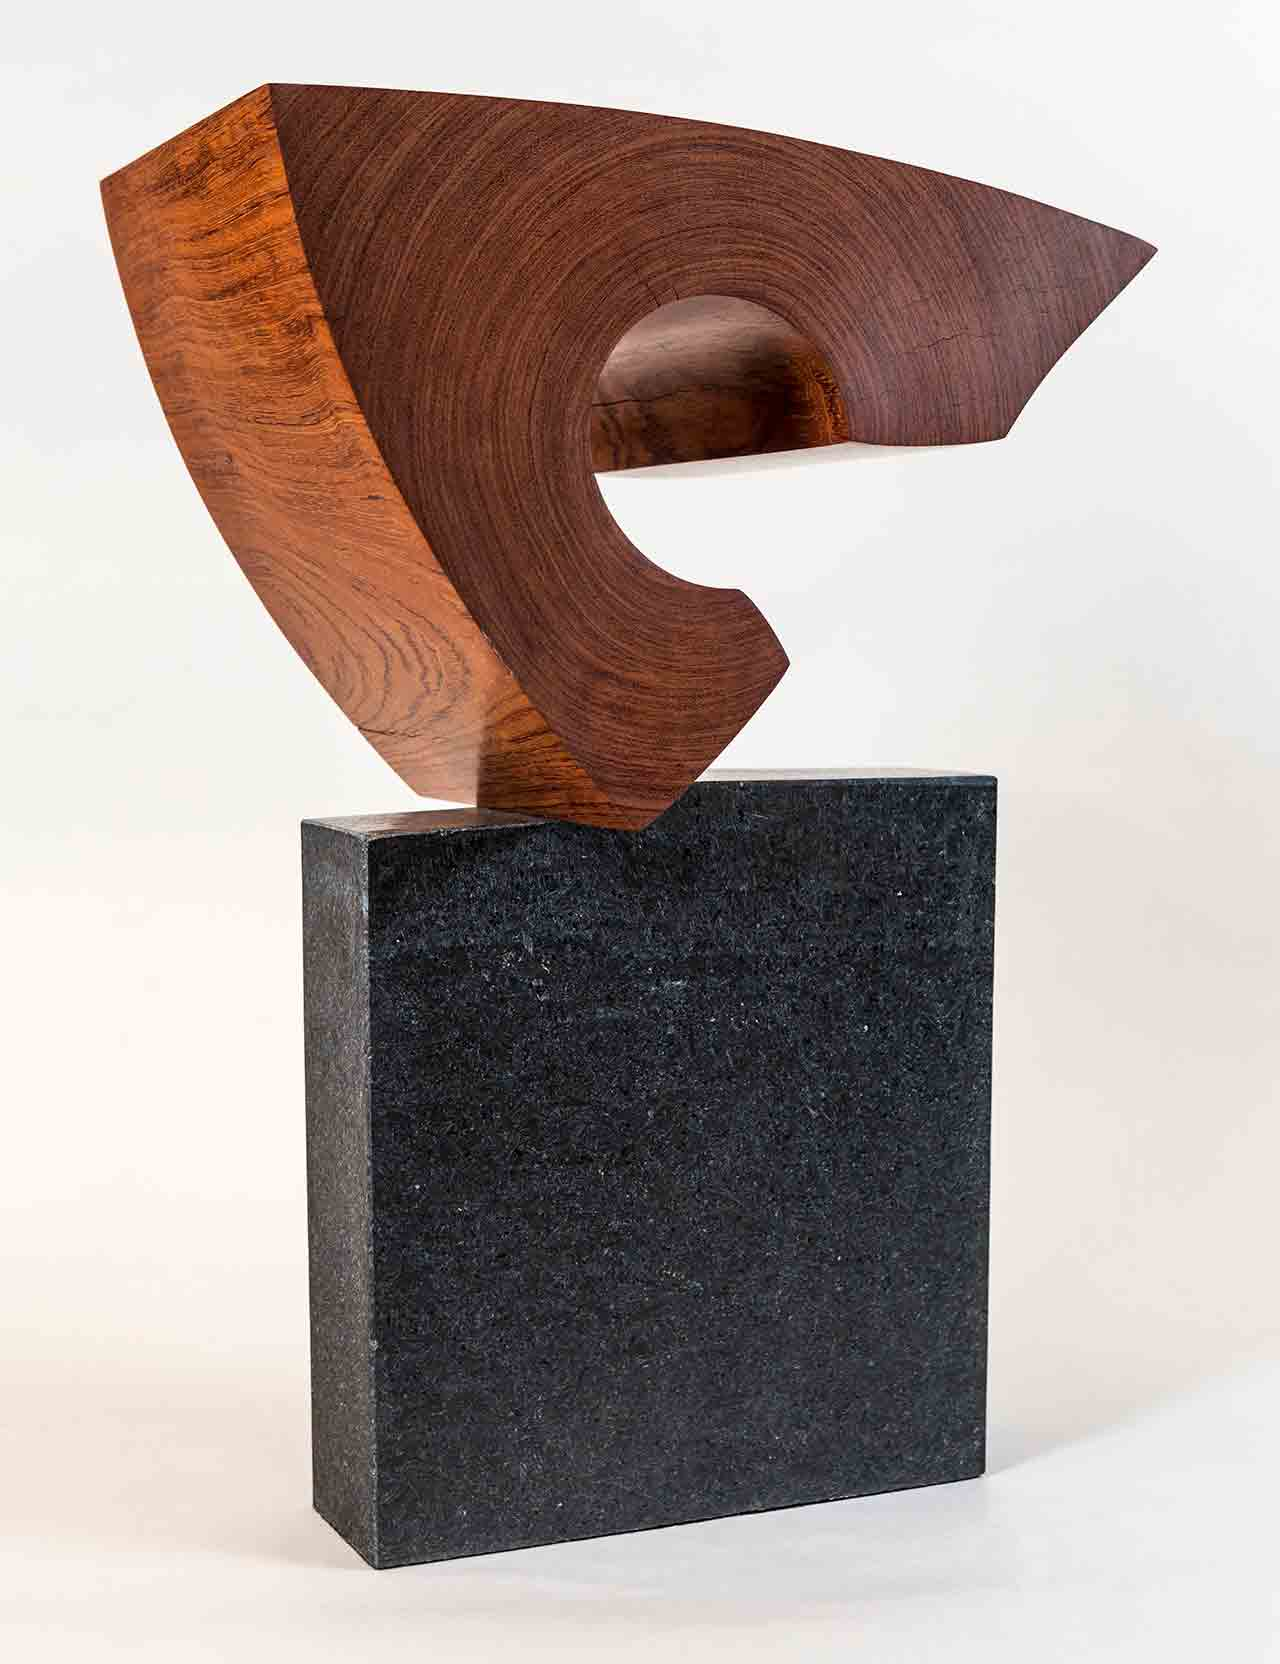 Khamsin ( Bubinga wood on Granite) $7,200